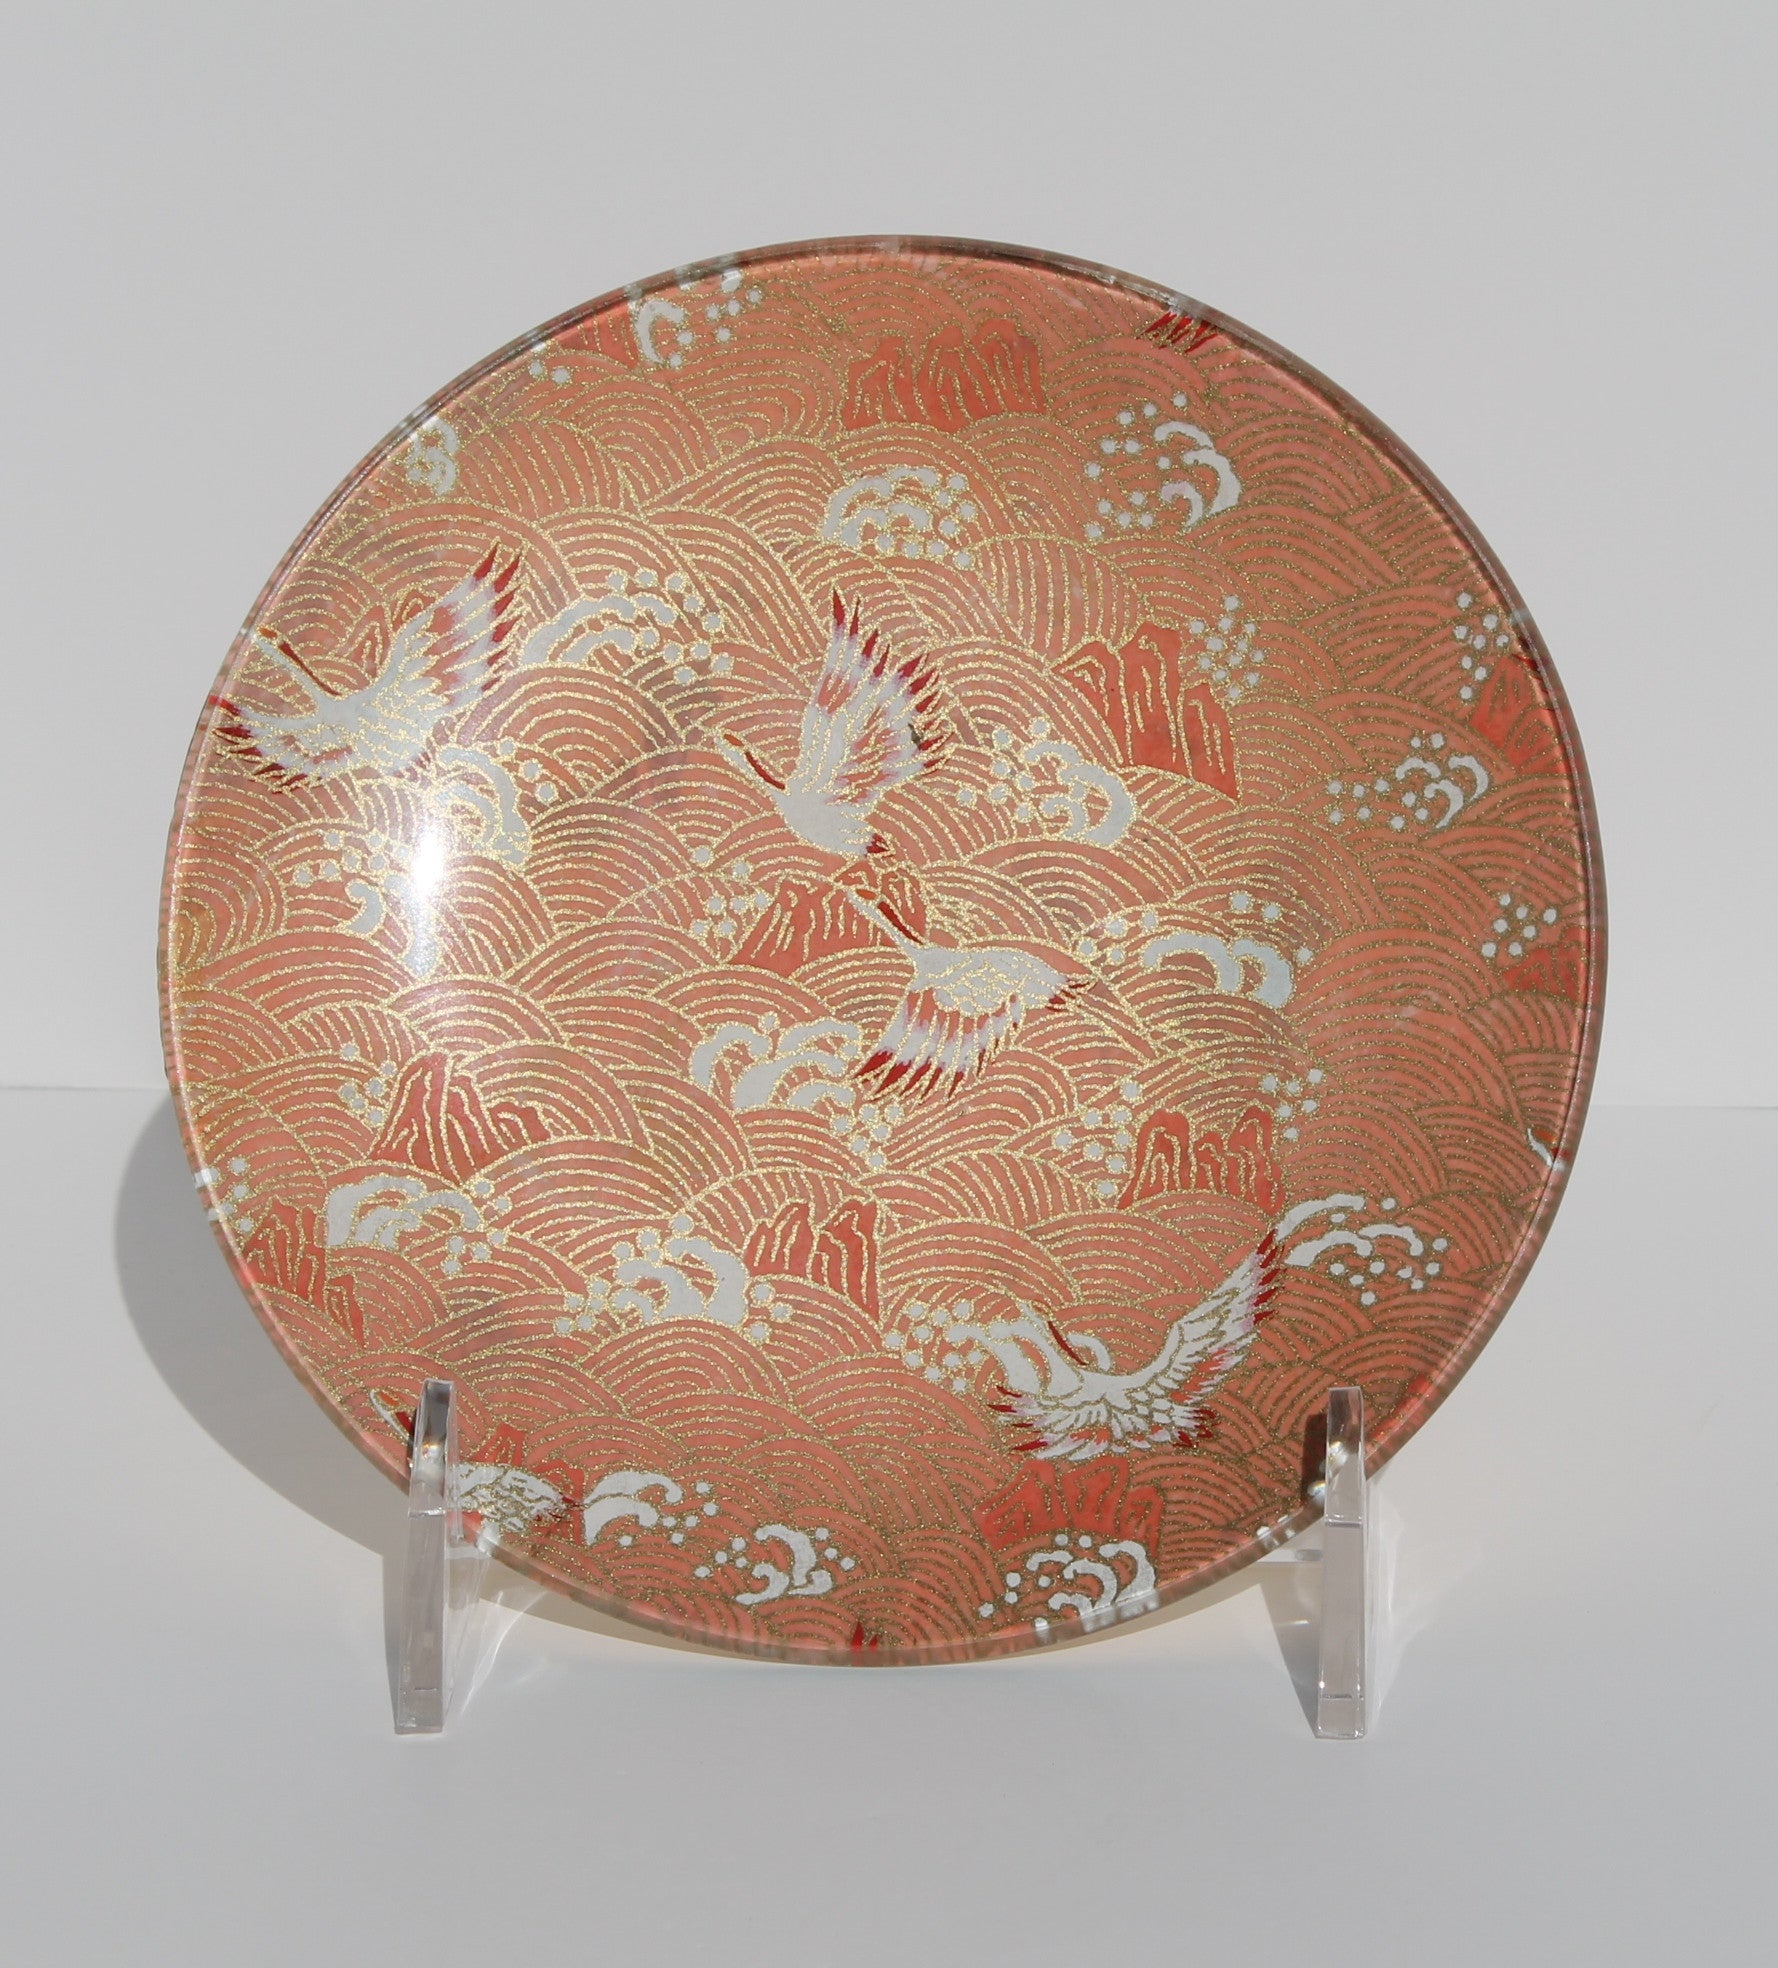 Japanese cranes decoupage glass plate pink